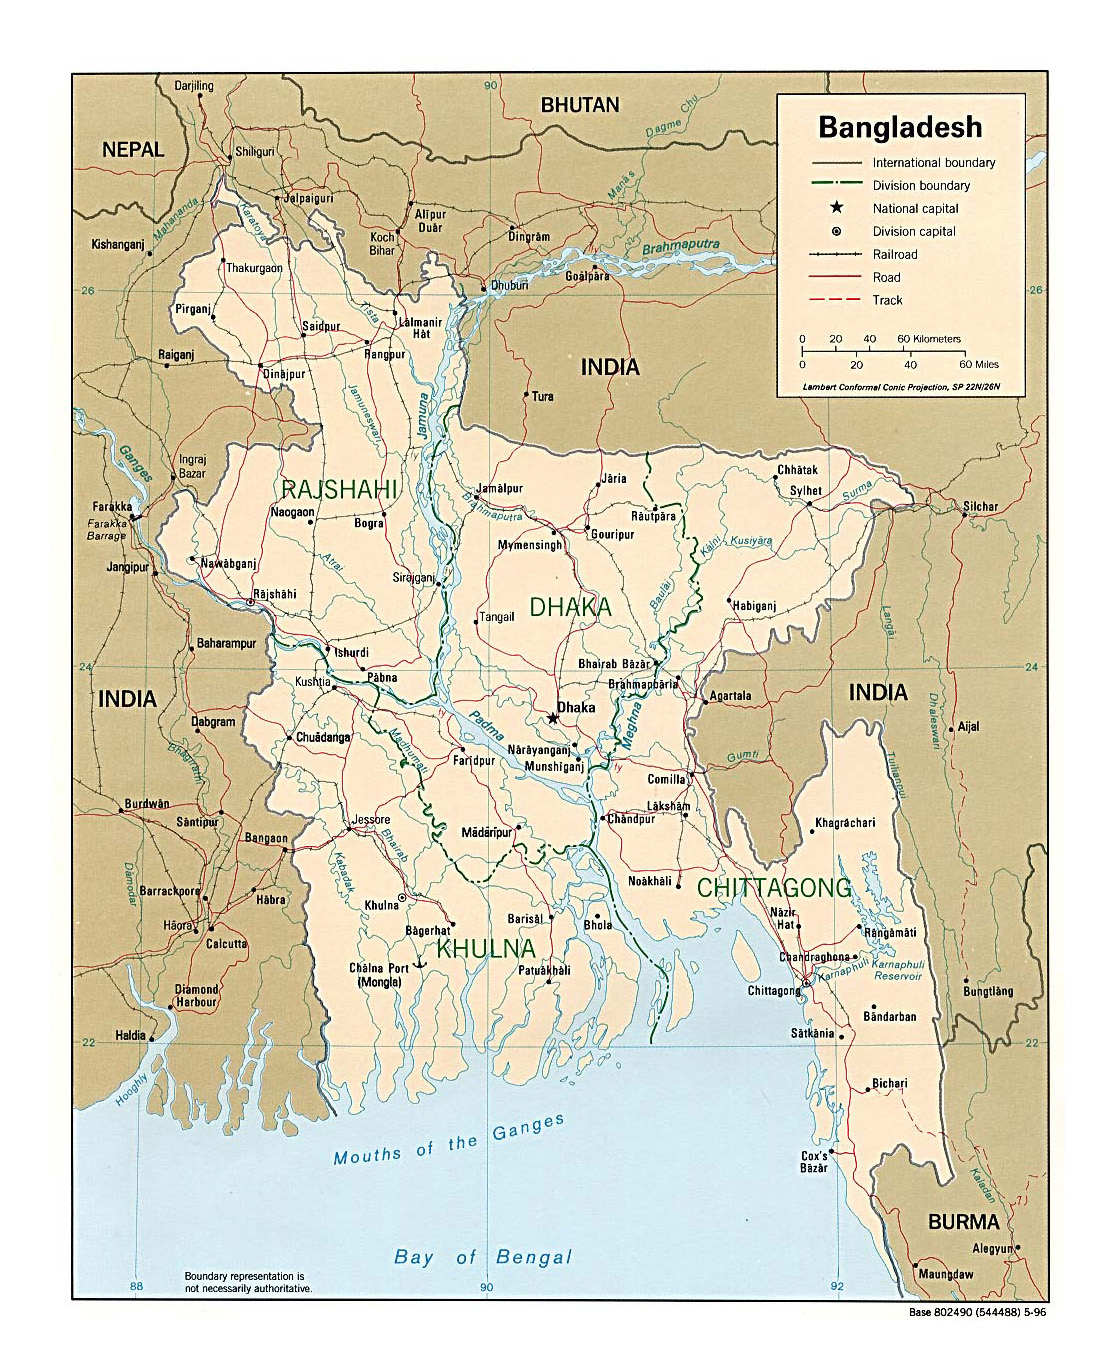 Detailed Political And Administrative Map Of Bangladesh With